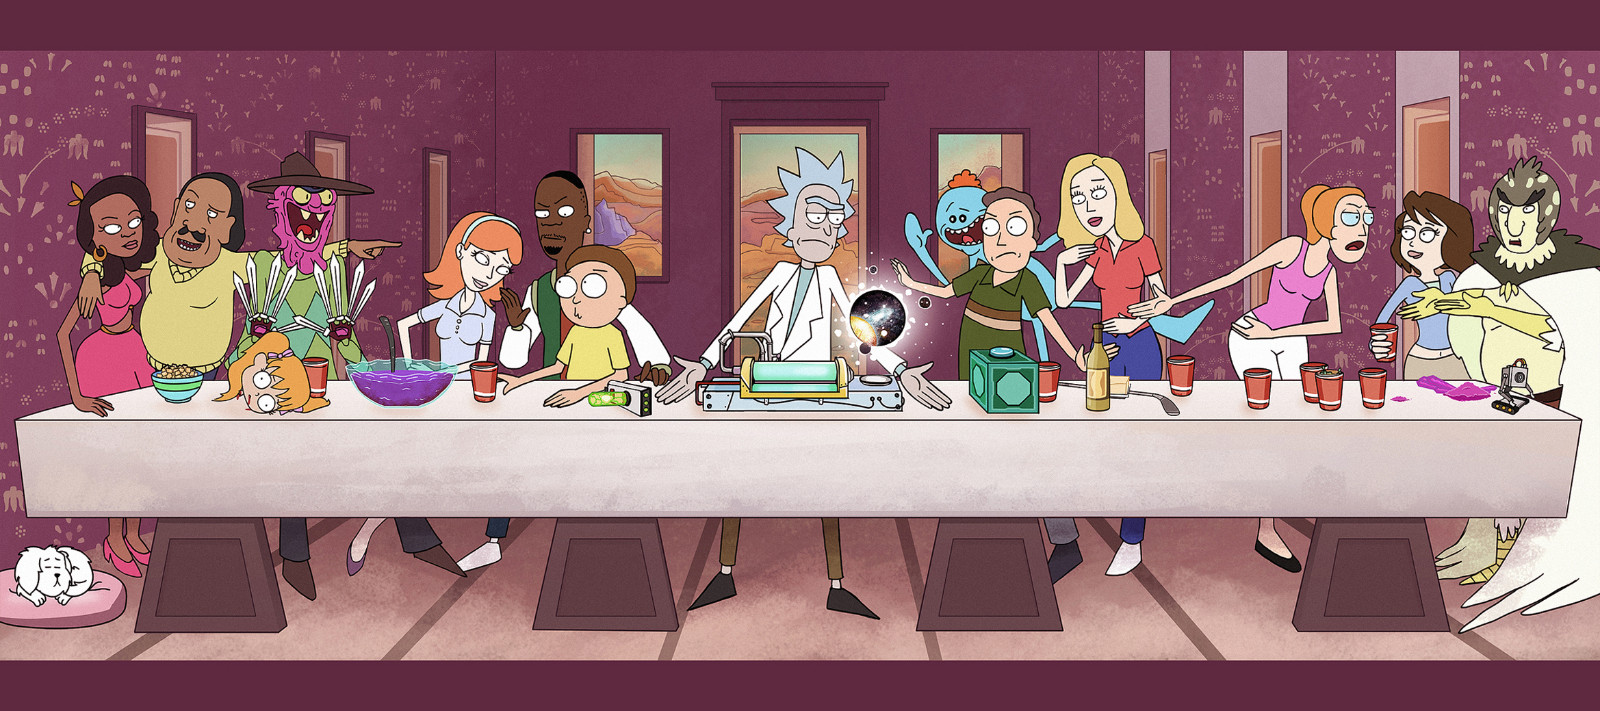 A Party Rick and Morty Hot Cartoon Animation Poster Vintage Retro 1600x711